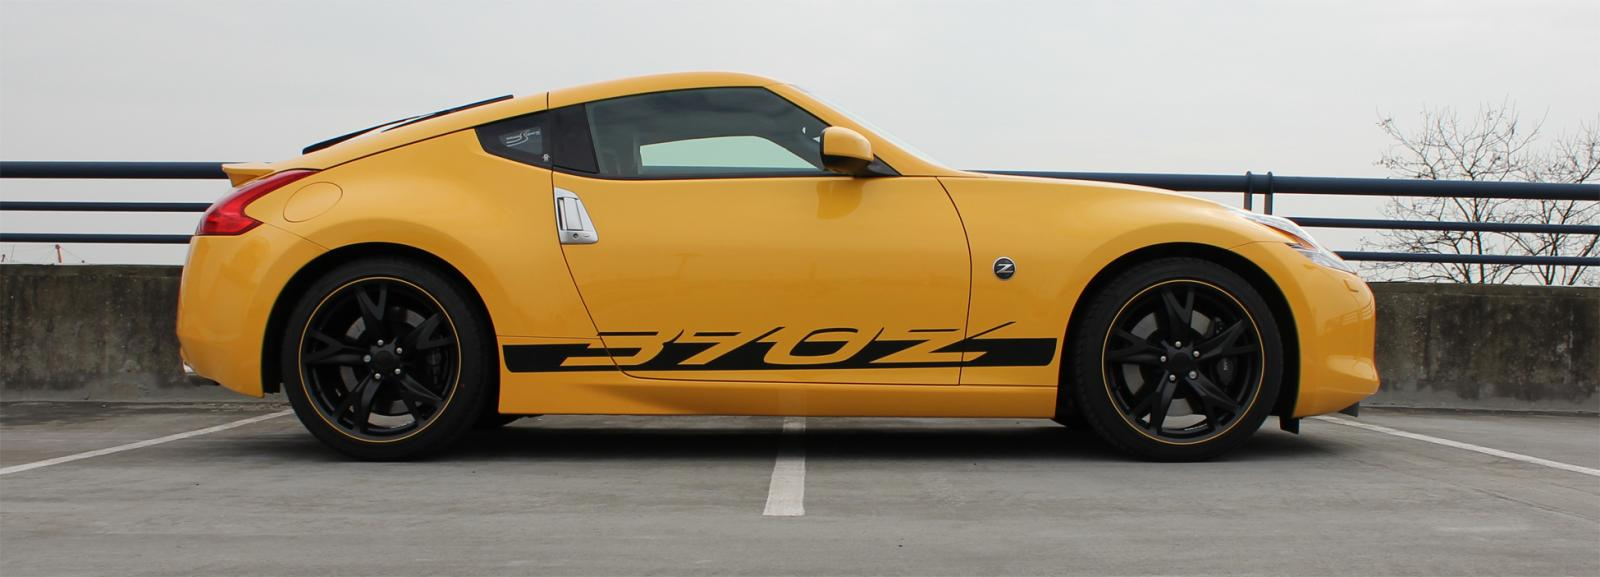 Thoughts on quot 370z quot side decal page 3 nissan 370z forum